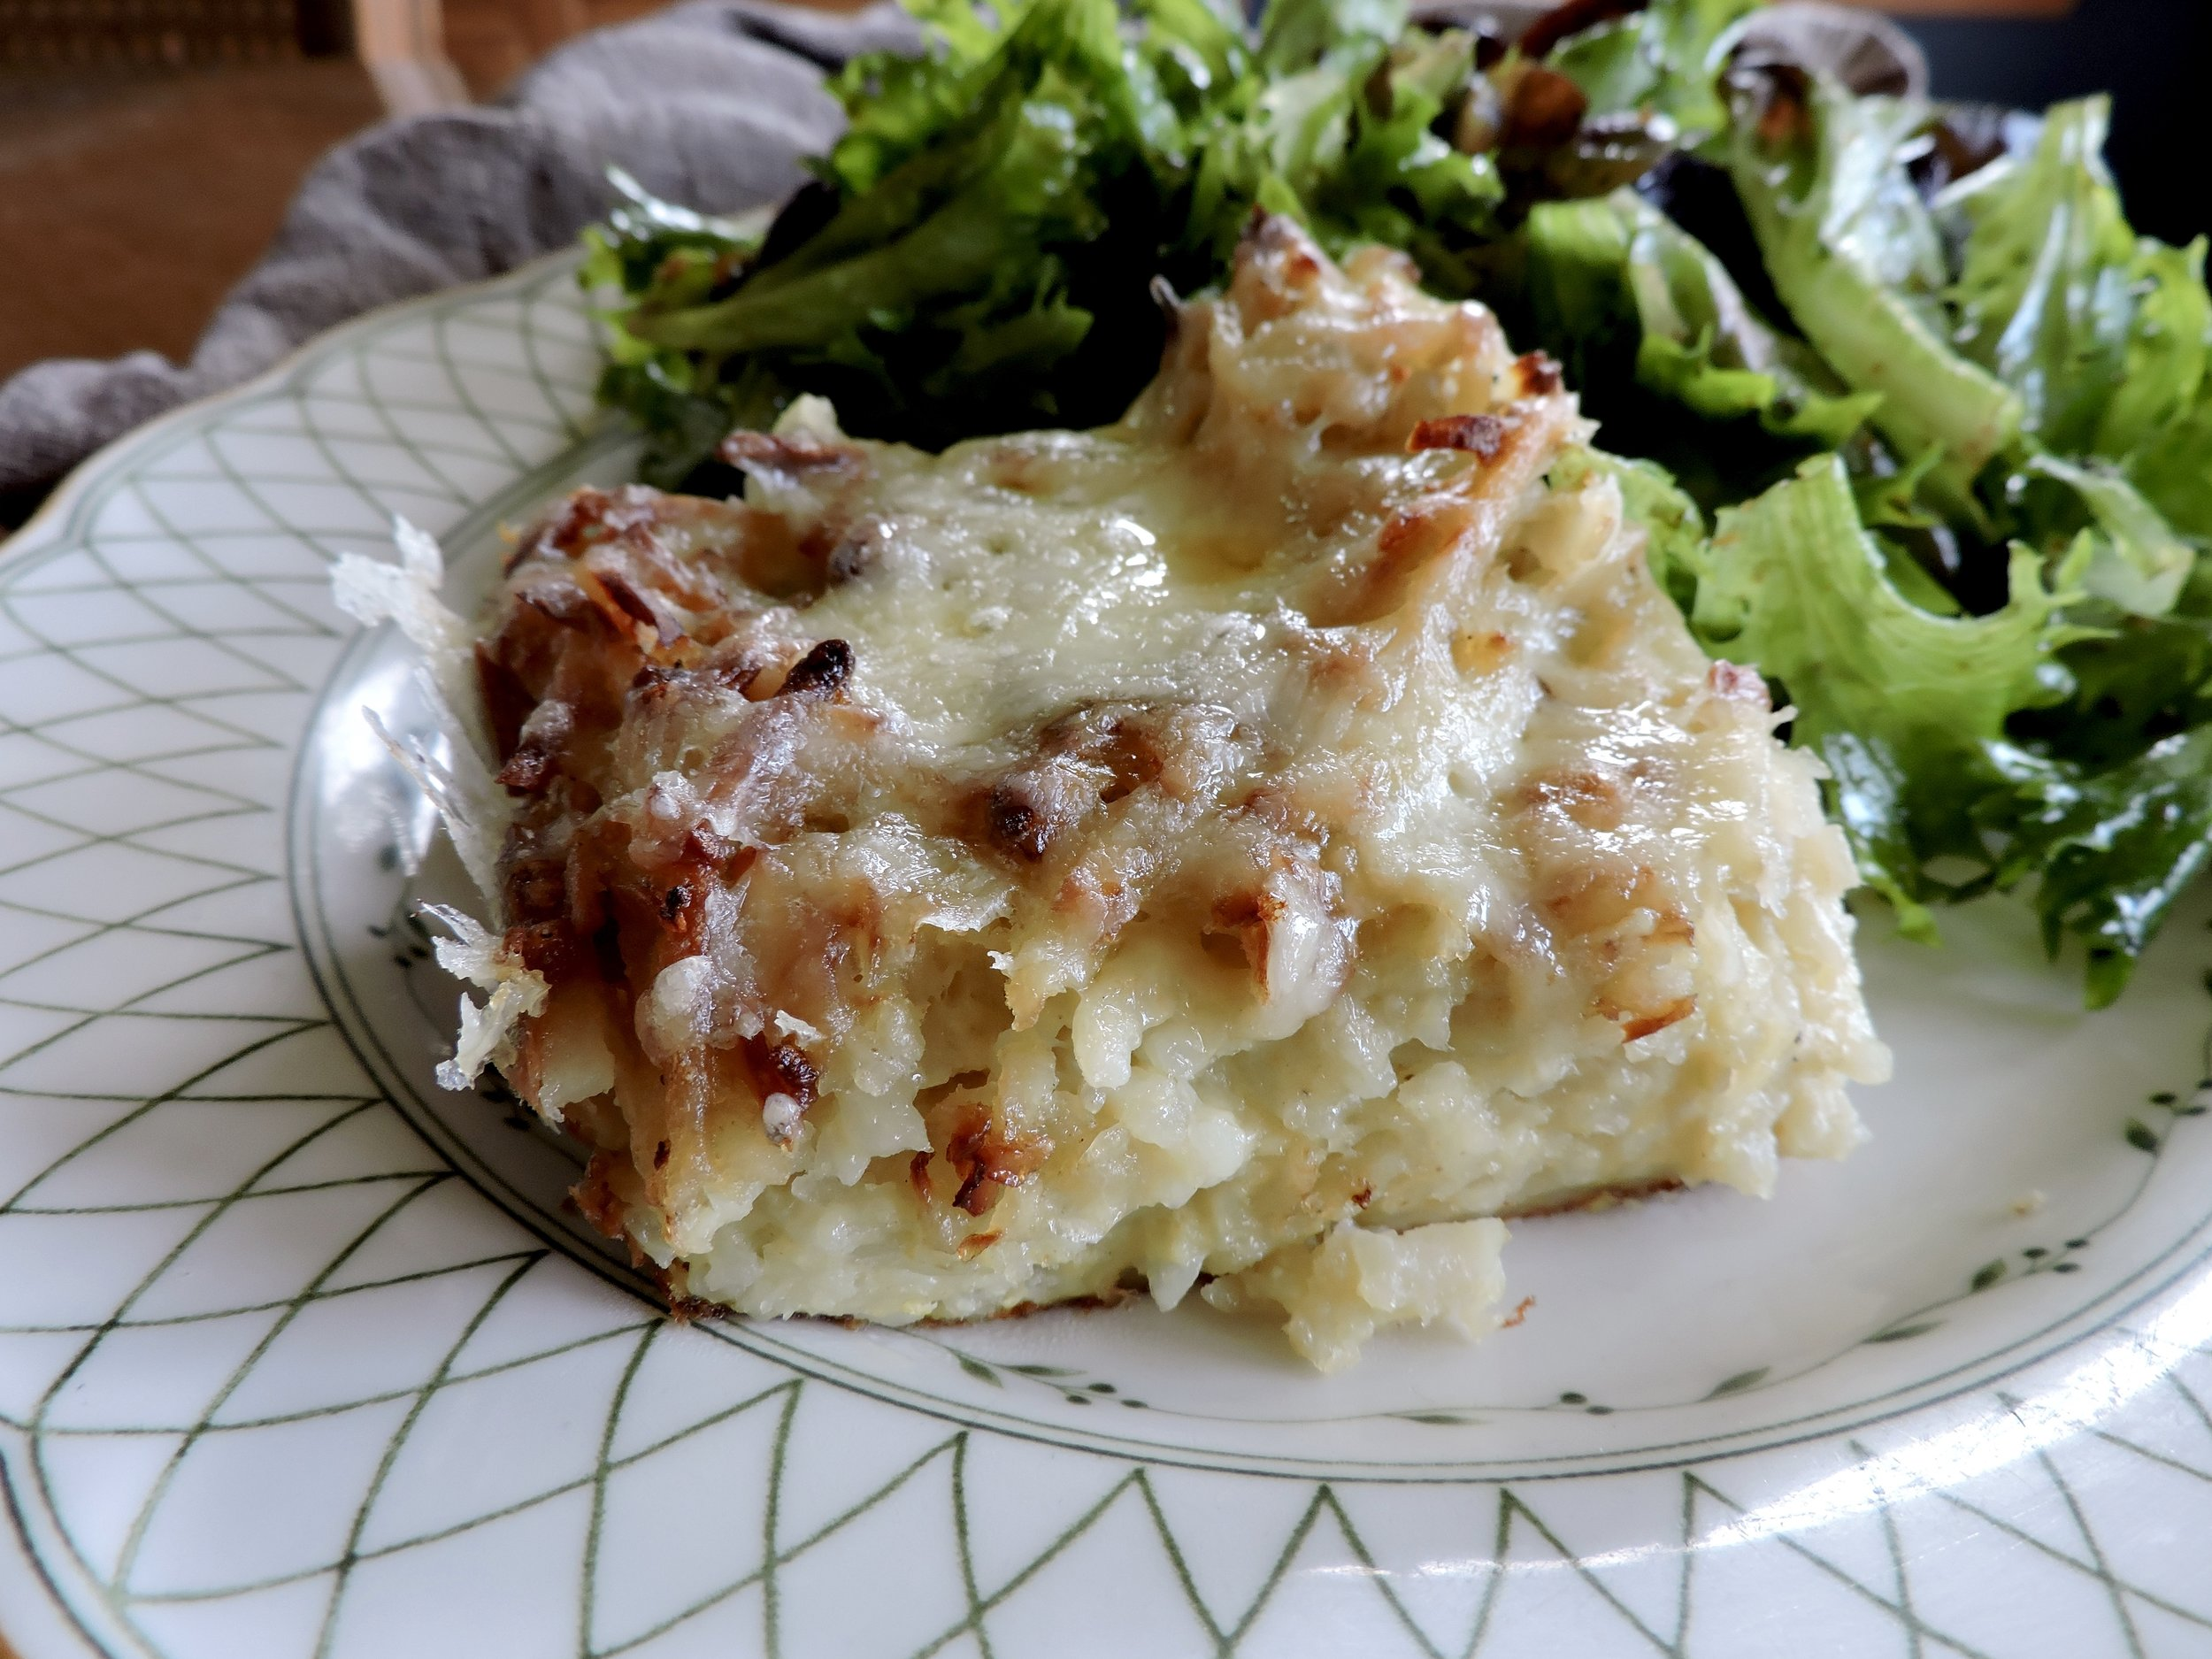 Here, potato kugel with cheesy delight.